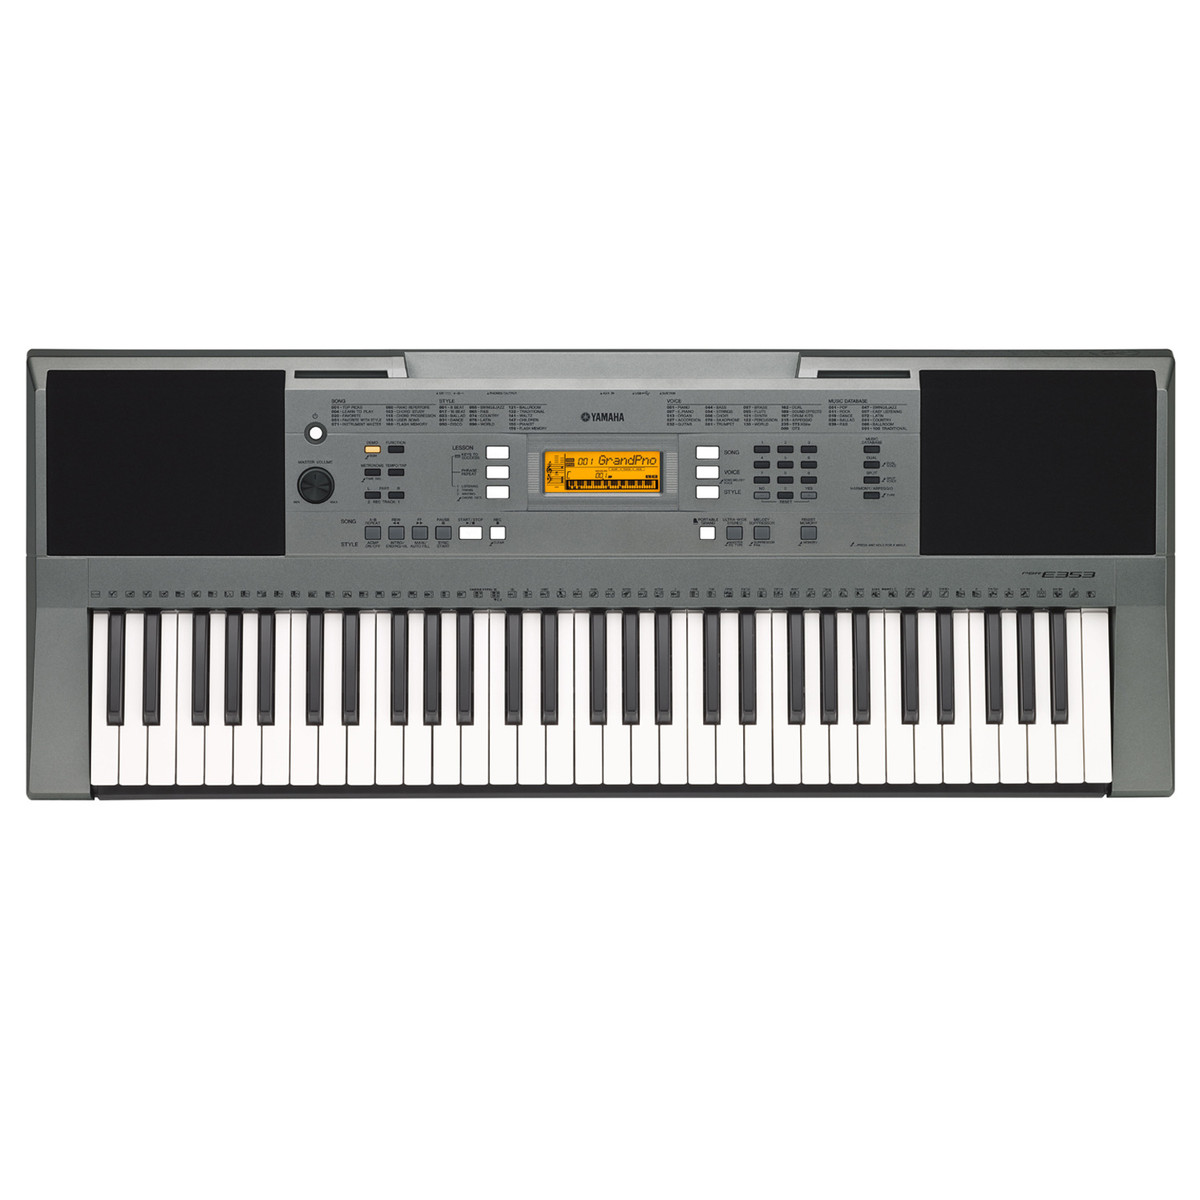 Yamaha psr e353 keyboard compare prices at foundem for Music keyboard yamaha price